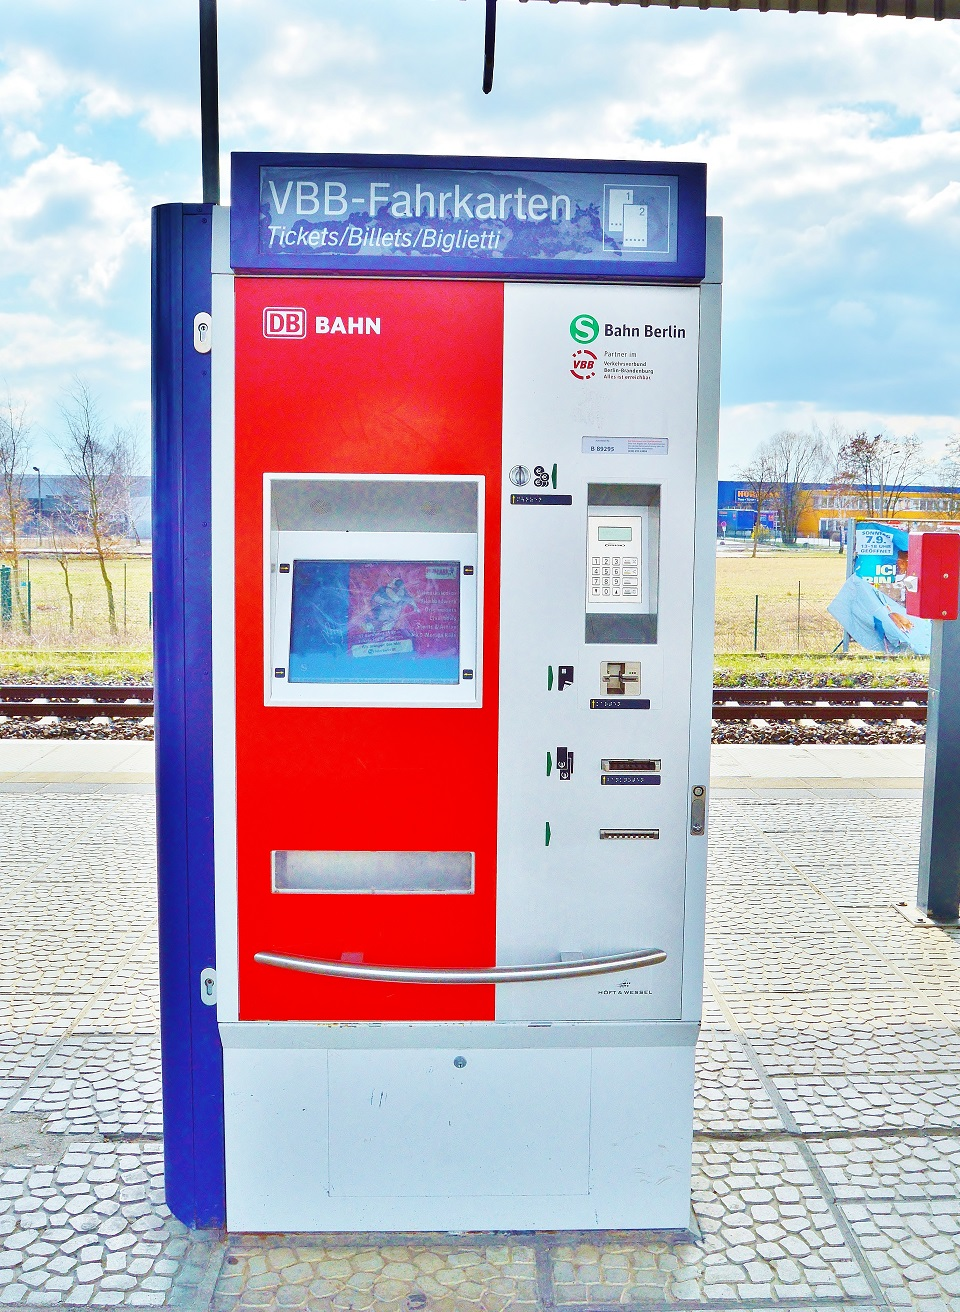 Difference Between Kiosk and Vending Machine